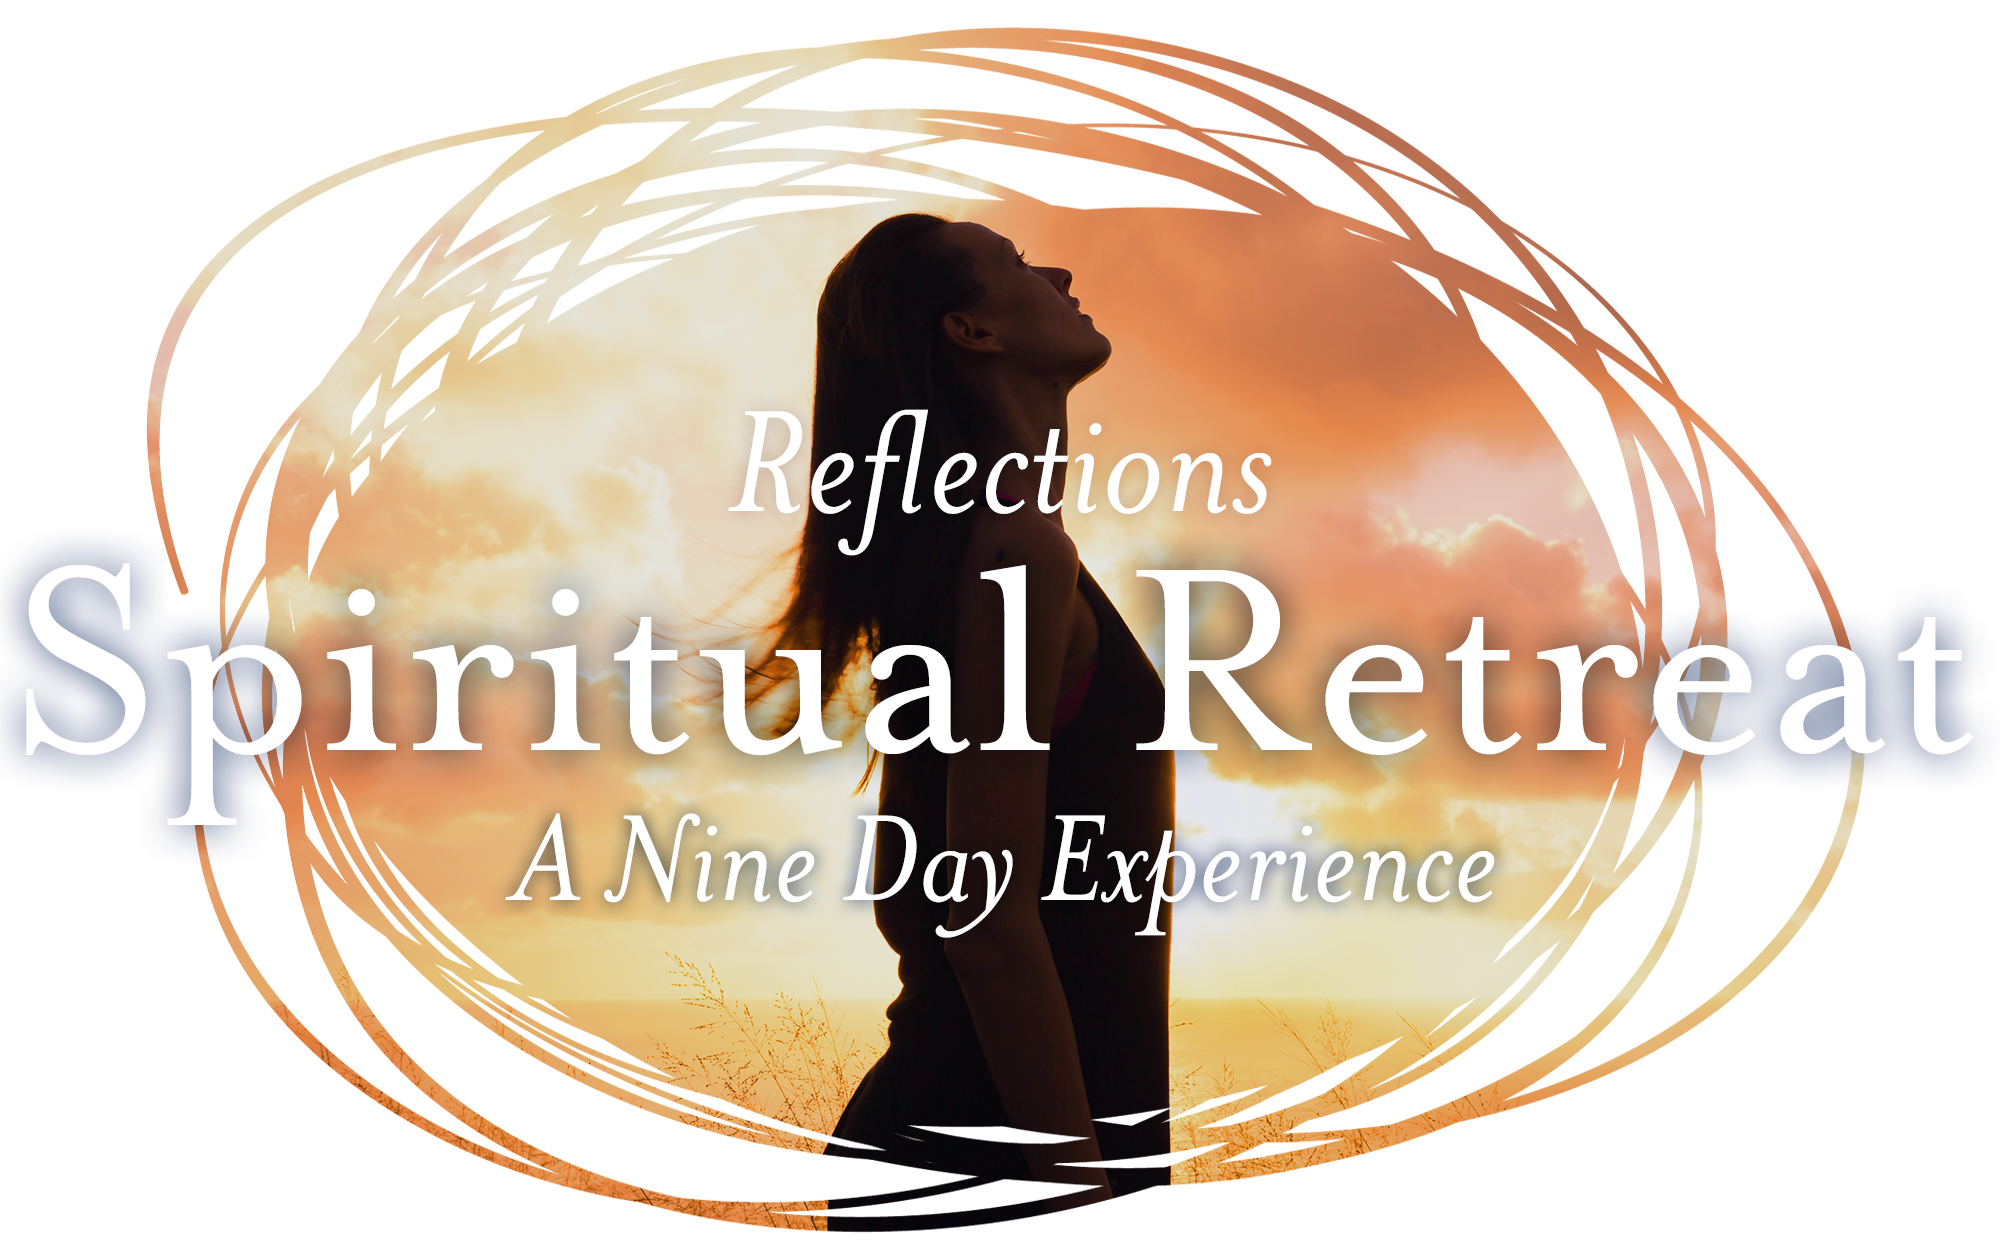 Reflections: Spiritual Retreat